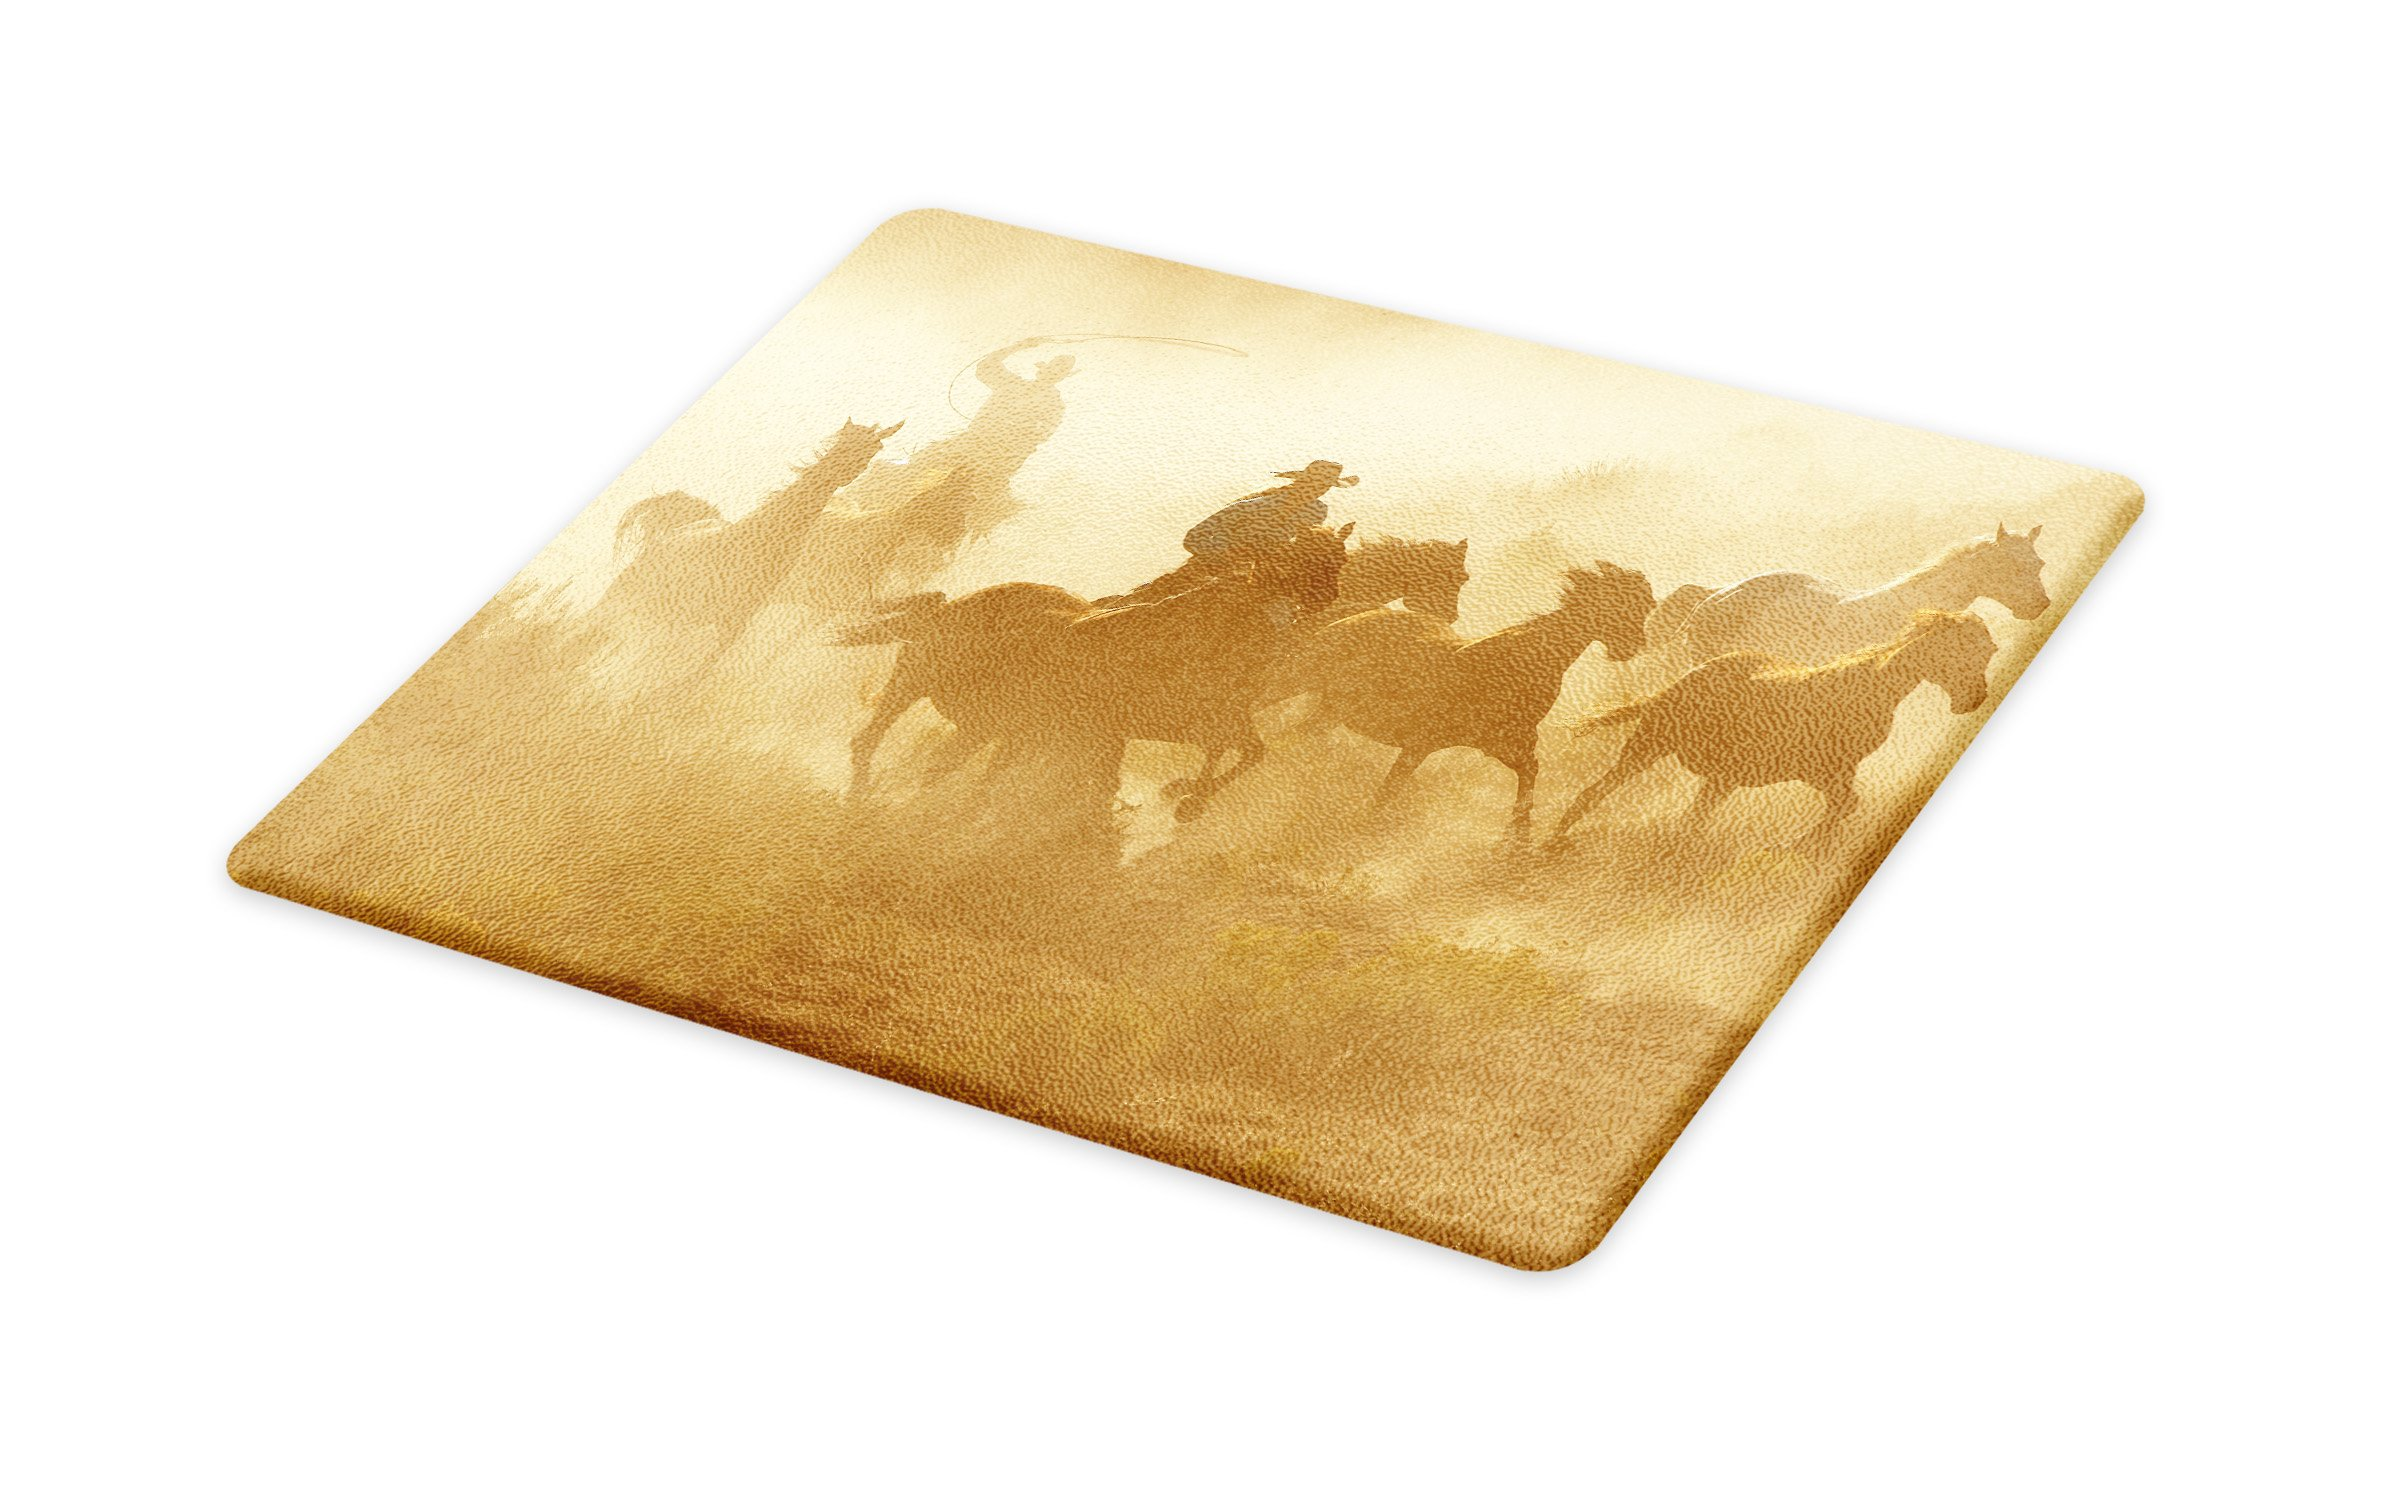 Lunarable Western Cutting Board, Galloping Running Horses in Desert Two Cowboys Roping Dusty Wild Rural Countryside, Decorative Tempered Glass Cutting and Serving Board, Large Size, Pale Brown